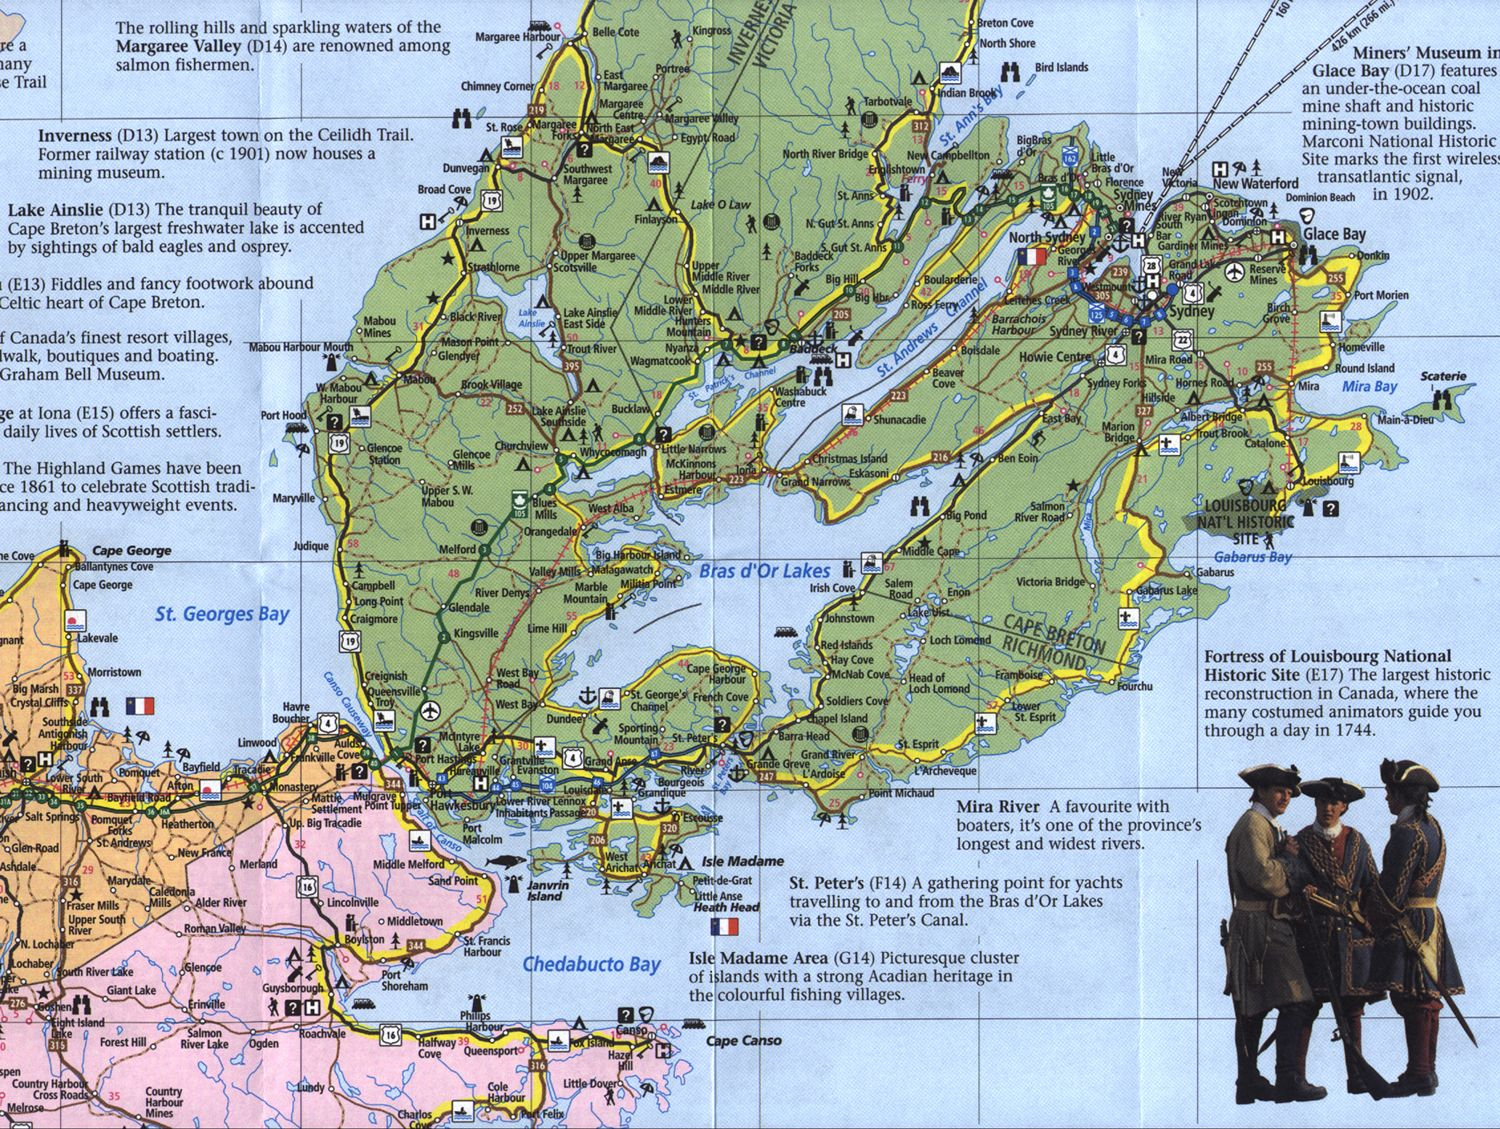 More Detailed Map Showing Isle Madame And Lennox Passage, And A - Printable Map Of Cape Breton Island